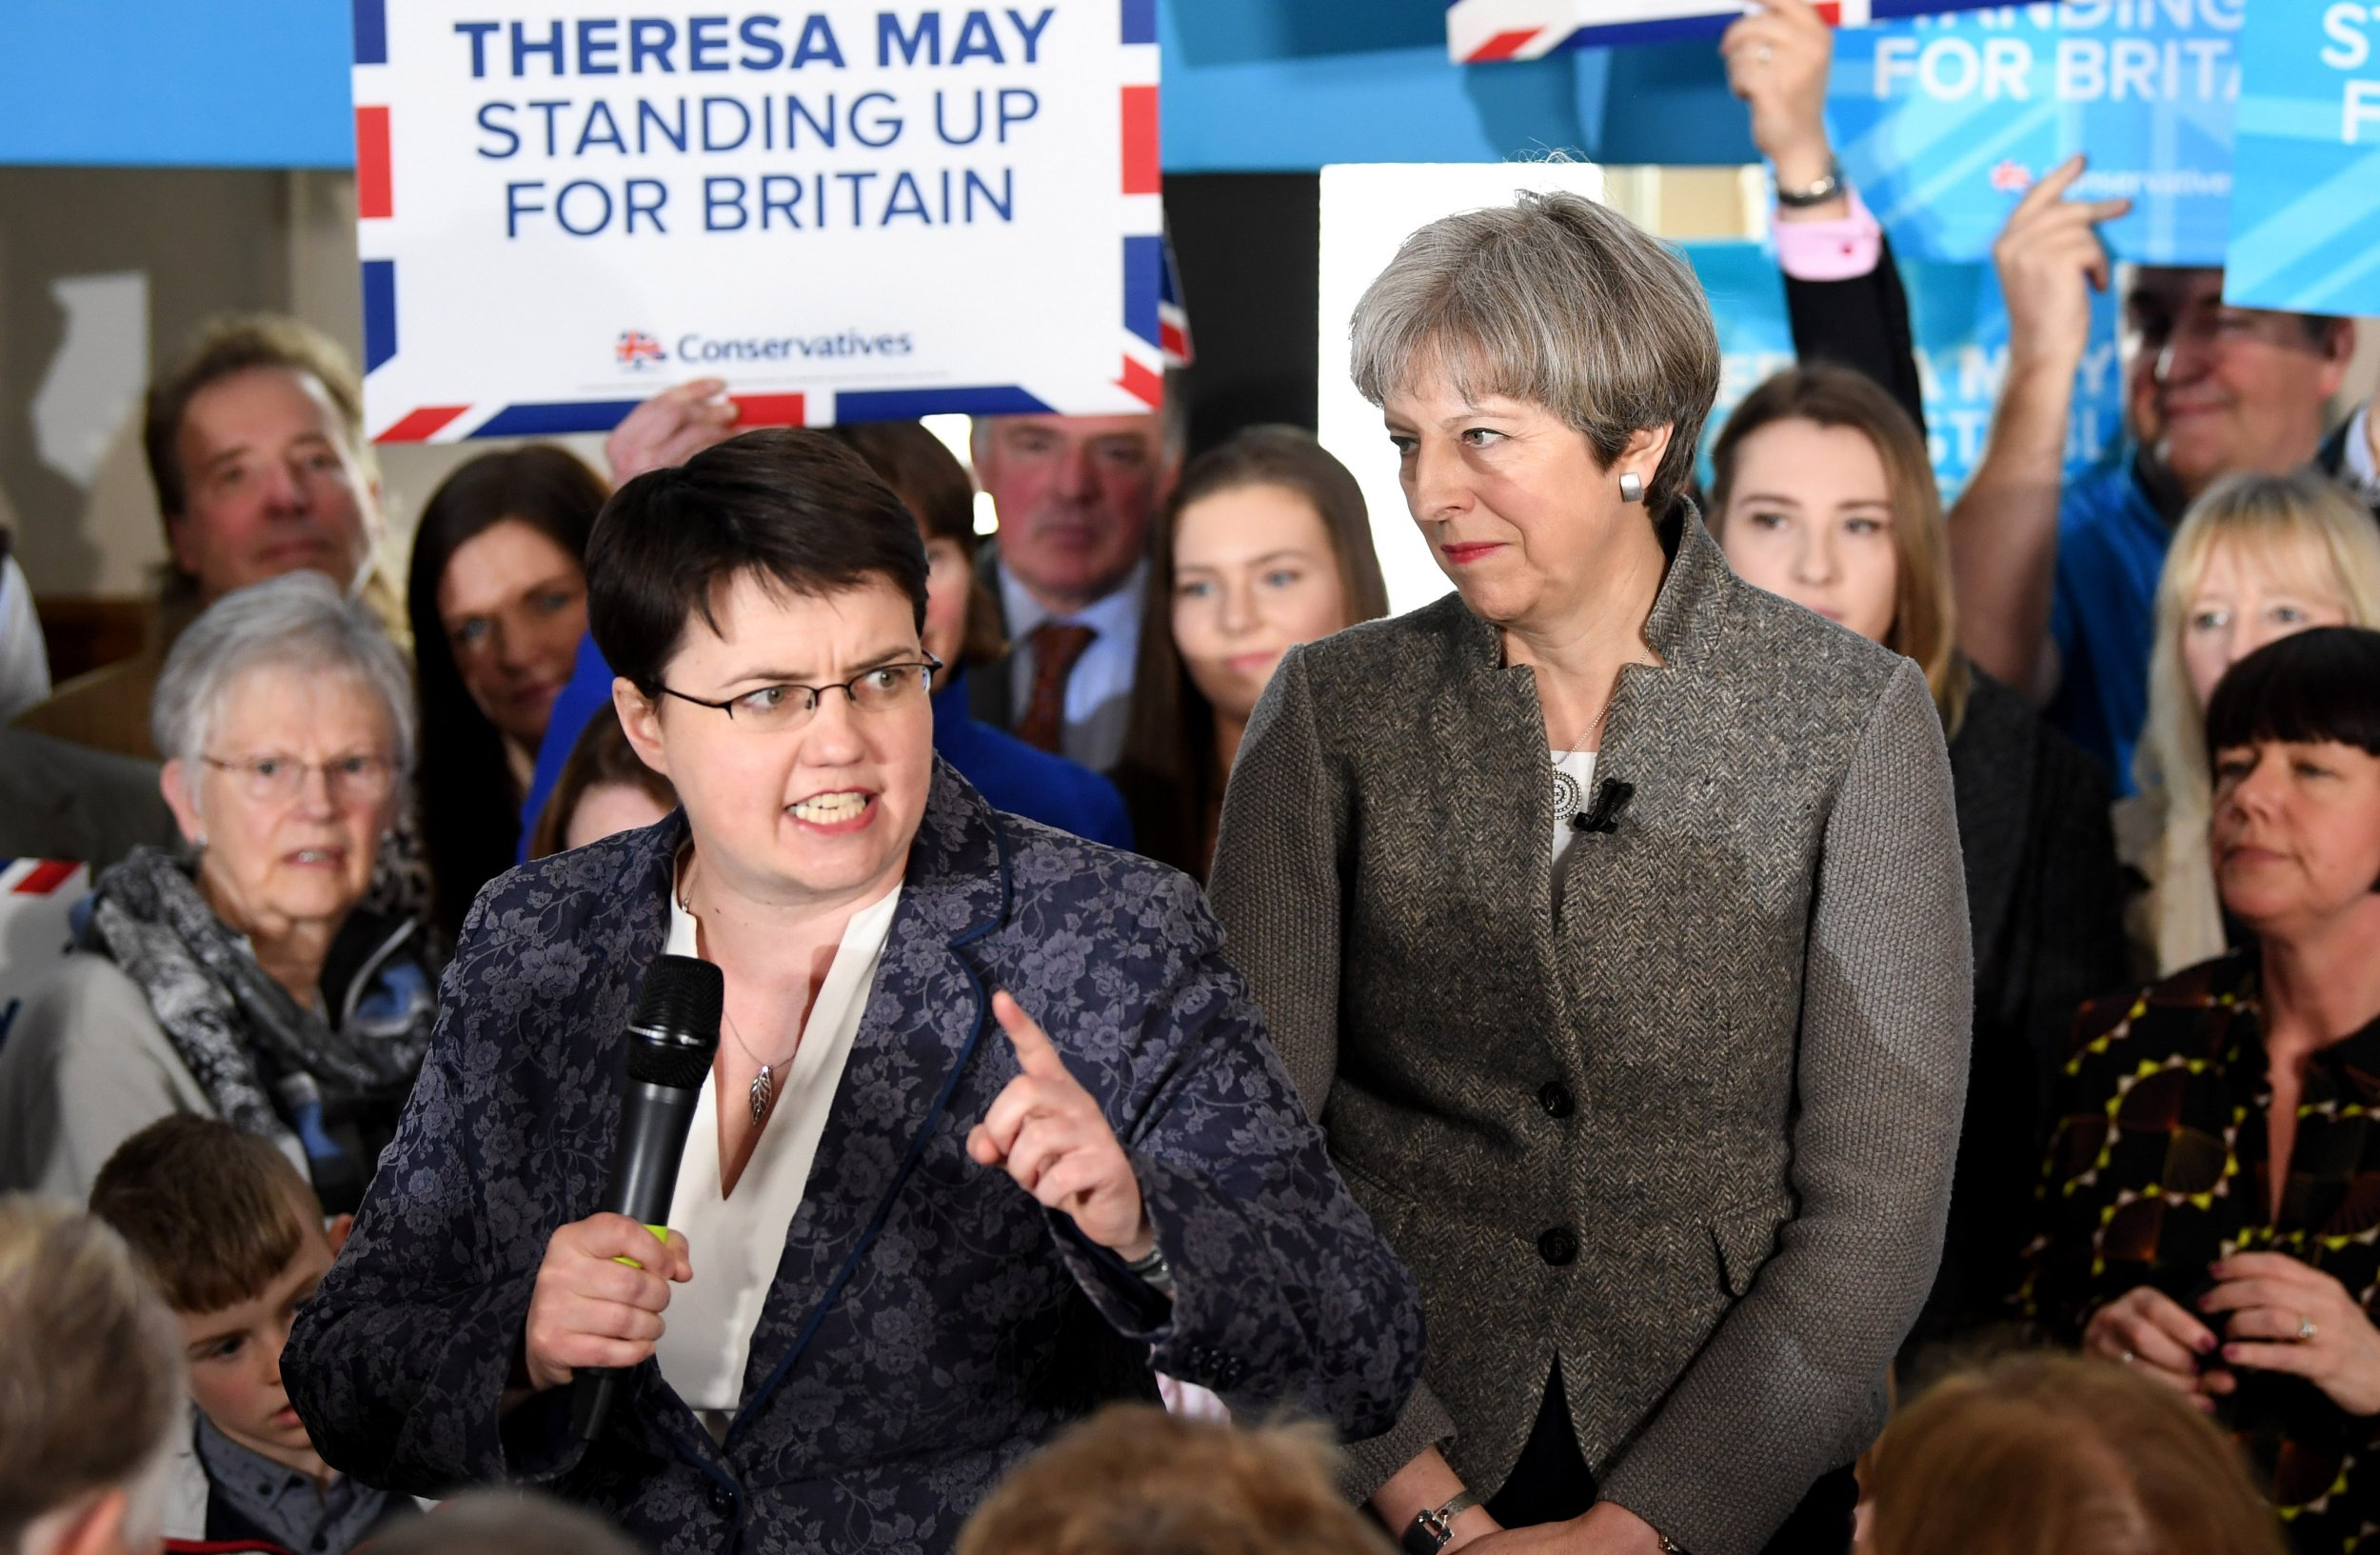 BANCHORY, SCOTLAND - APRIL 29: British Prime Minister Theresa May looks into the crowd as Scottish Conservative Leader Ruth Davidson (L) speaks at an election campaign rally on April 29, 2017 in Banchory, Scotland. The Prime Minister is campaigning in Scotland with the message that a vote for the Conservatives would strengthen the economy and the UK's hand in Brexit negotiations. The UK goes to the polls on June 8. (Photo by Jeff J Mitchell/Getty Images)